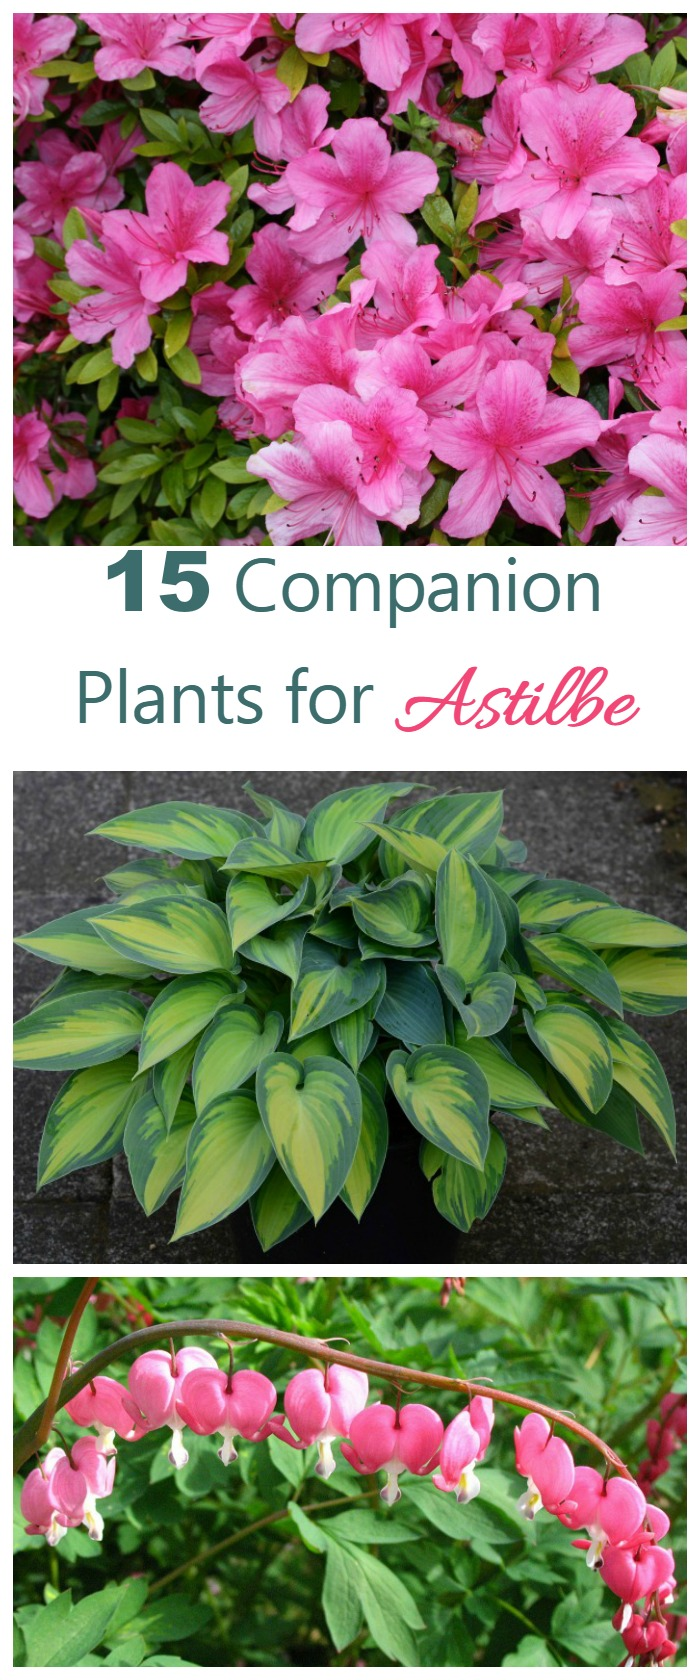 Astilbe Companion Plants - What to Grow with Astilbe - The Gardening on hosta and daylily garden, hosta and caladium garden, hosta garden plans blueprints, hosta and hydrangea garden,